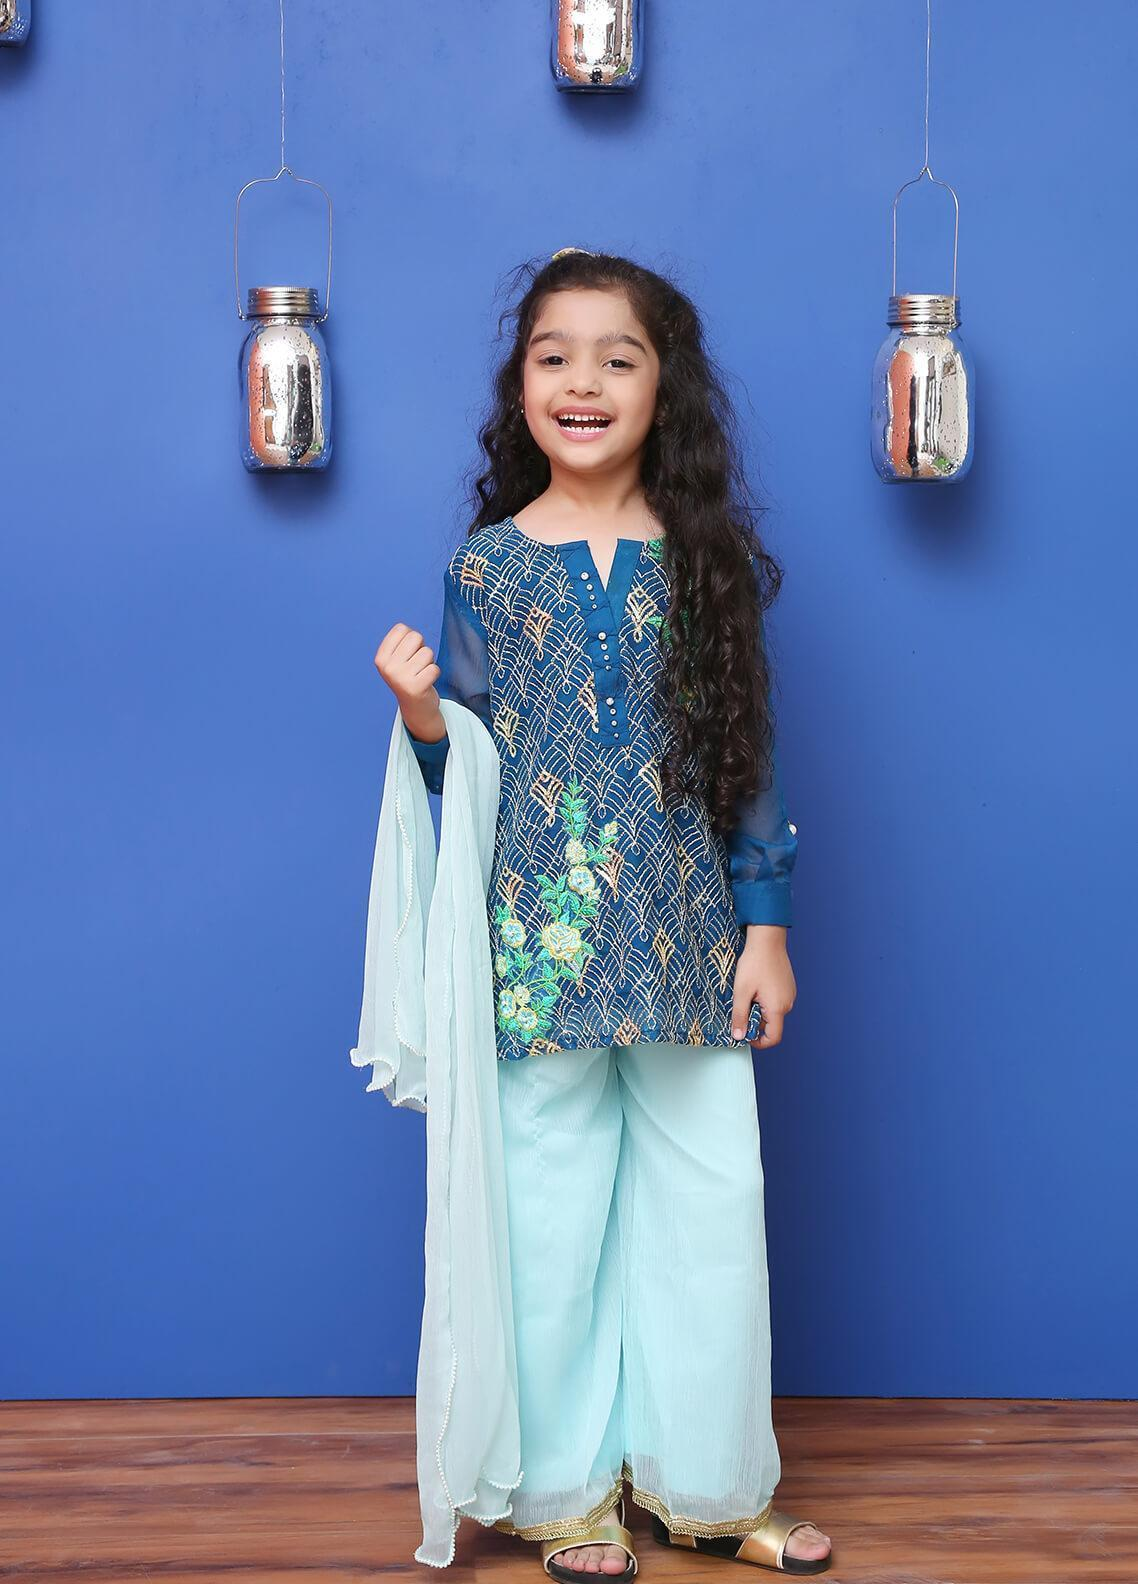 Ochre Chiffon Formal 3 Piece Suit for Girls -  OFW 177 Teal Blue